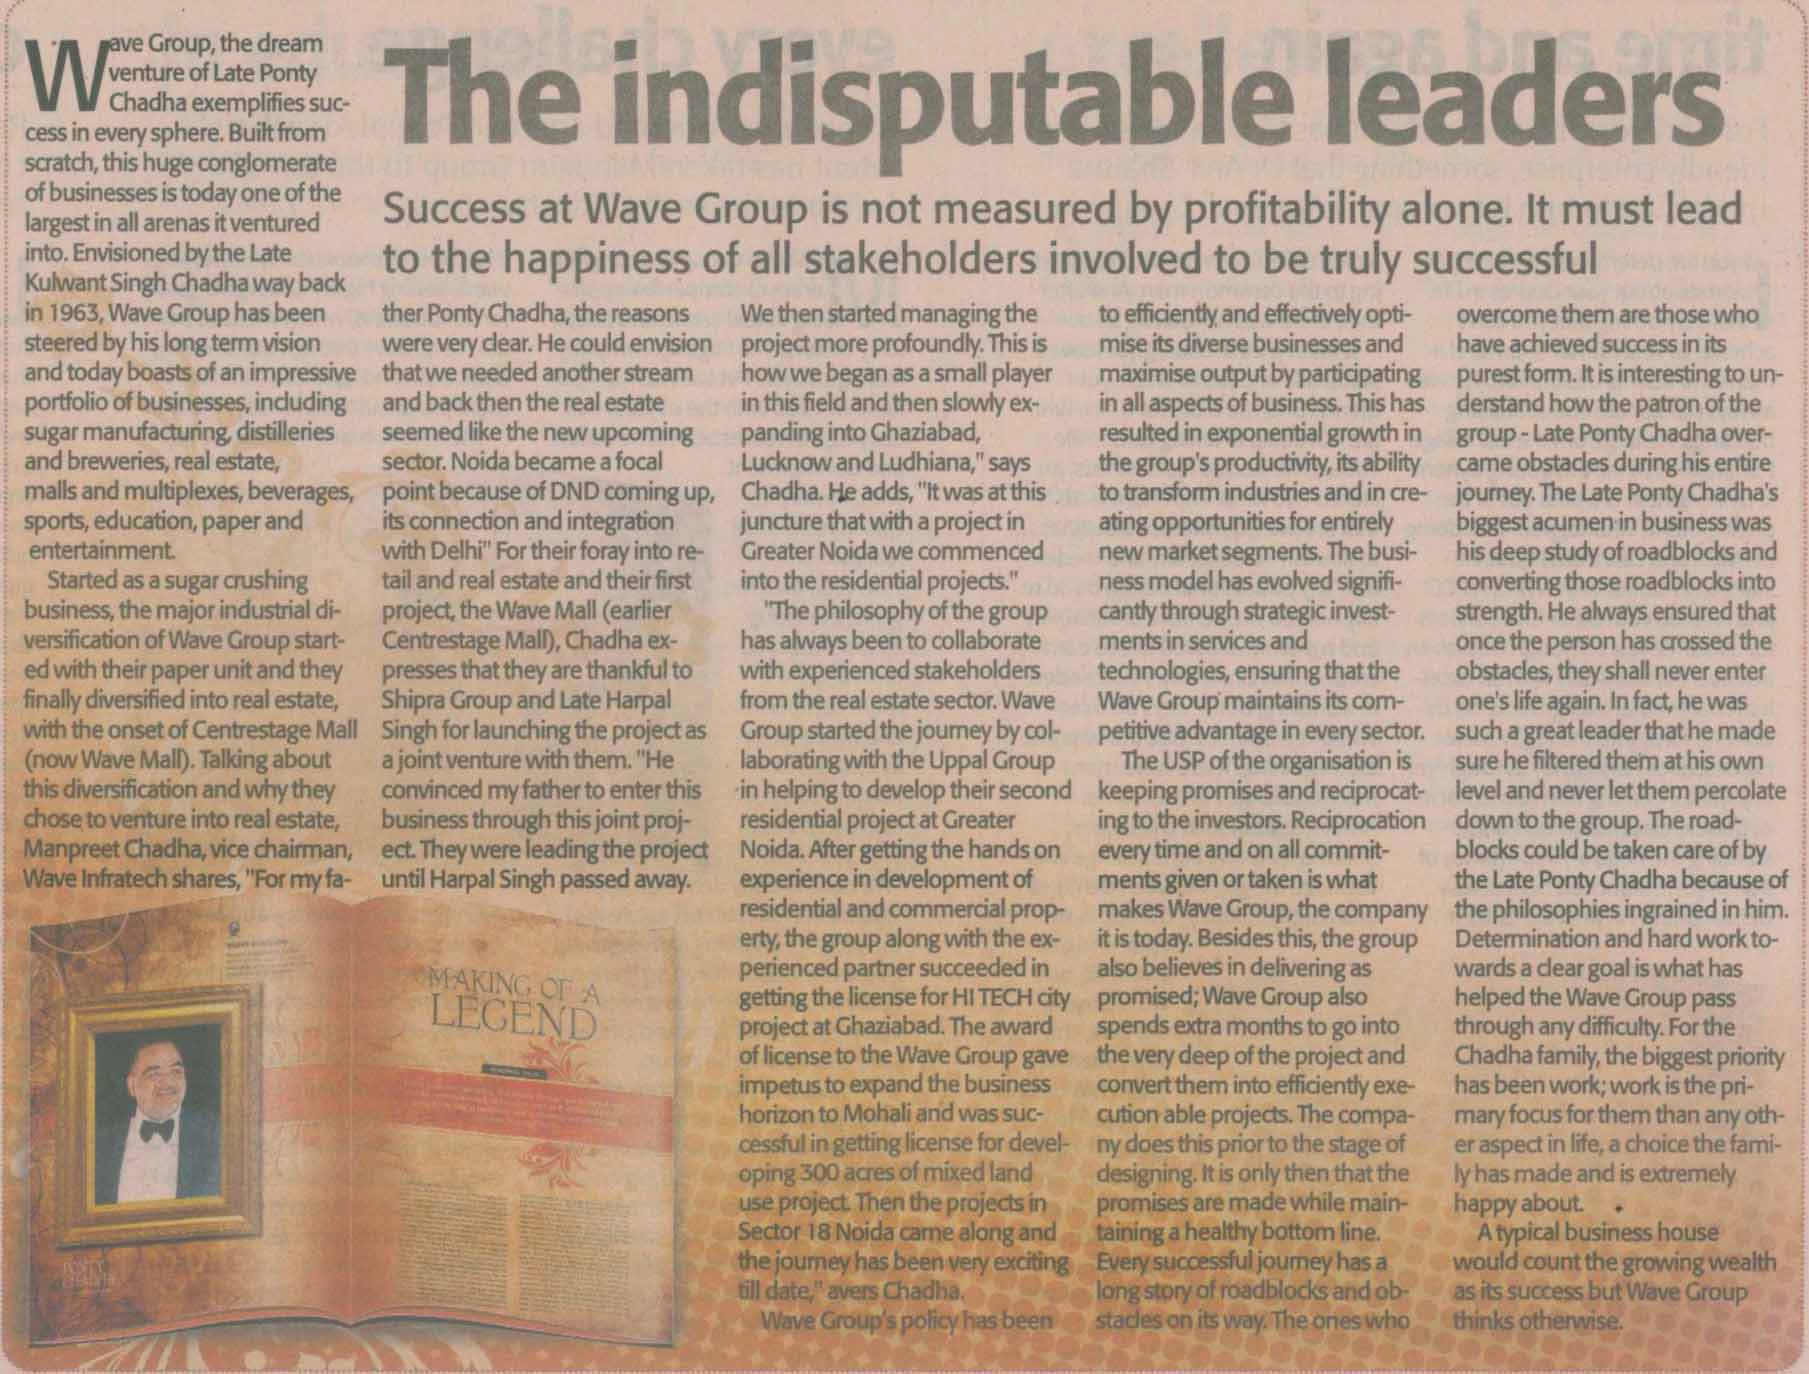 The Indisputable Leaders